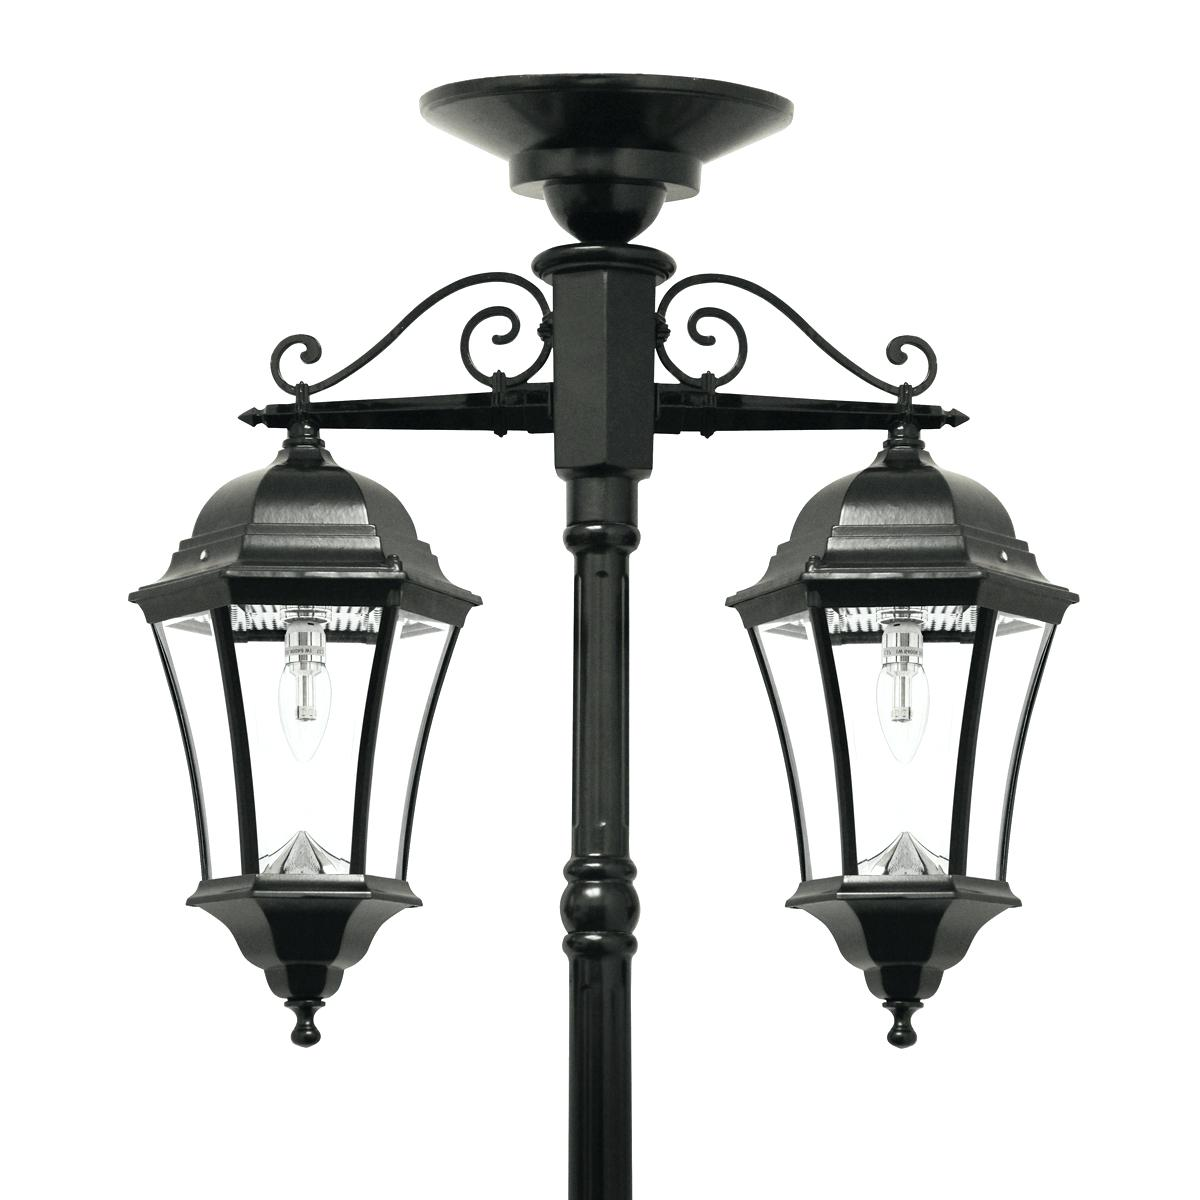 1200x1200 Led Post Lights Outdoor Victorian Bulb Double Downward Hanging